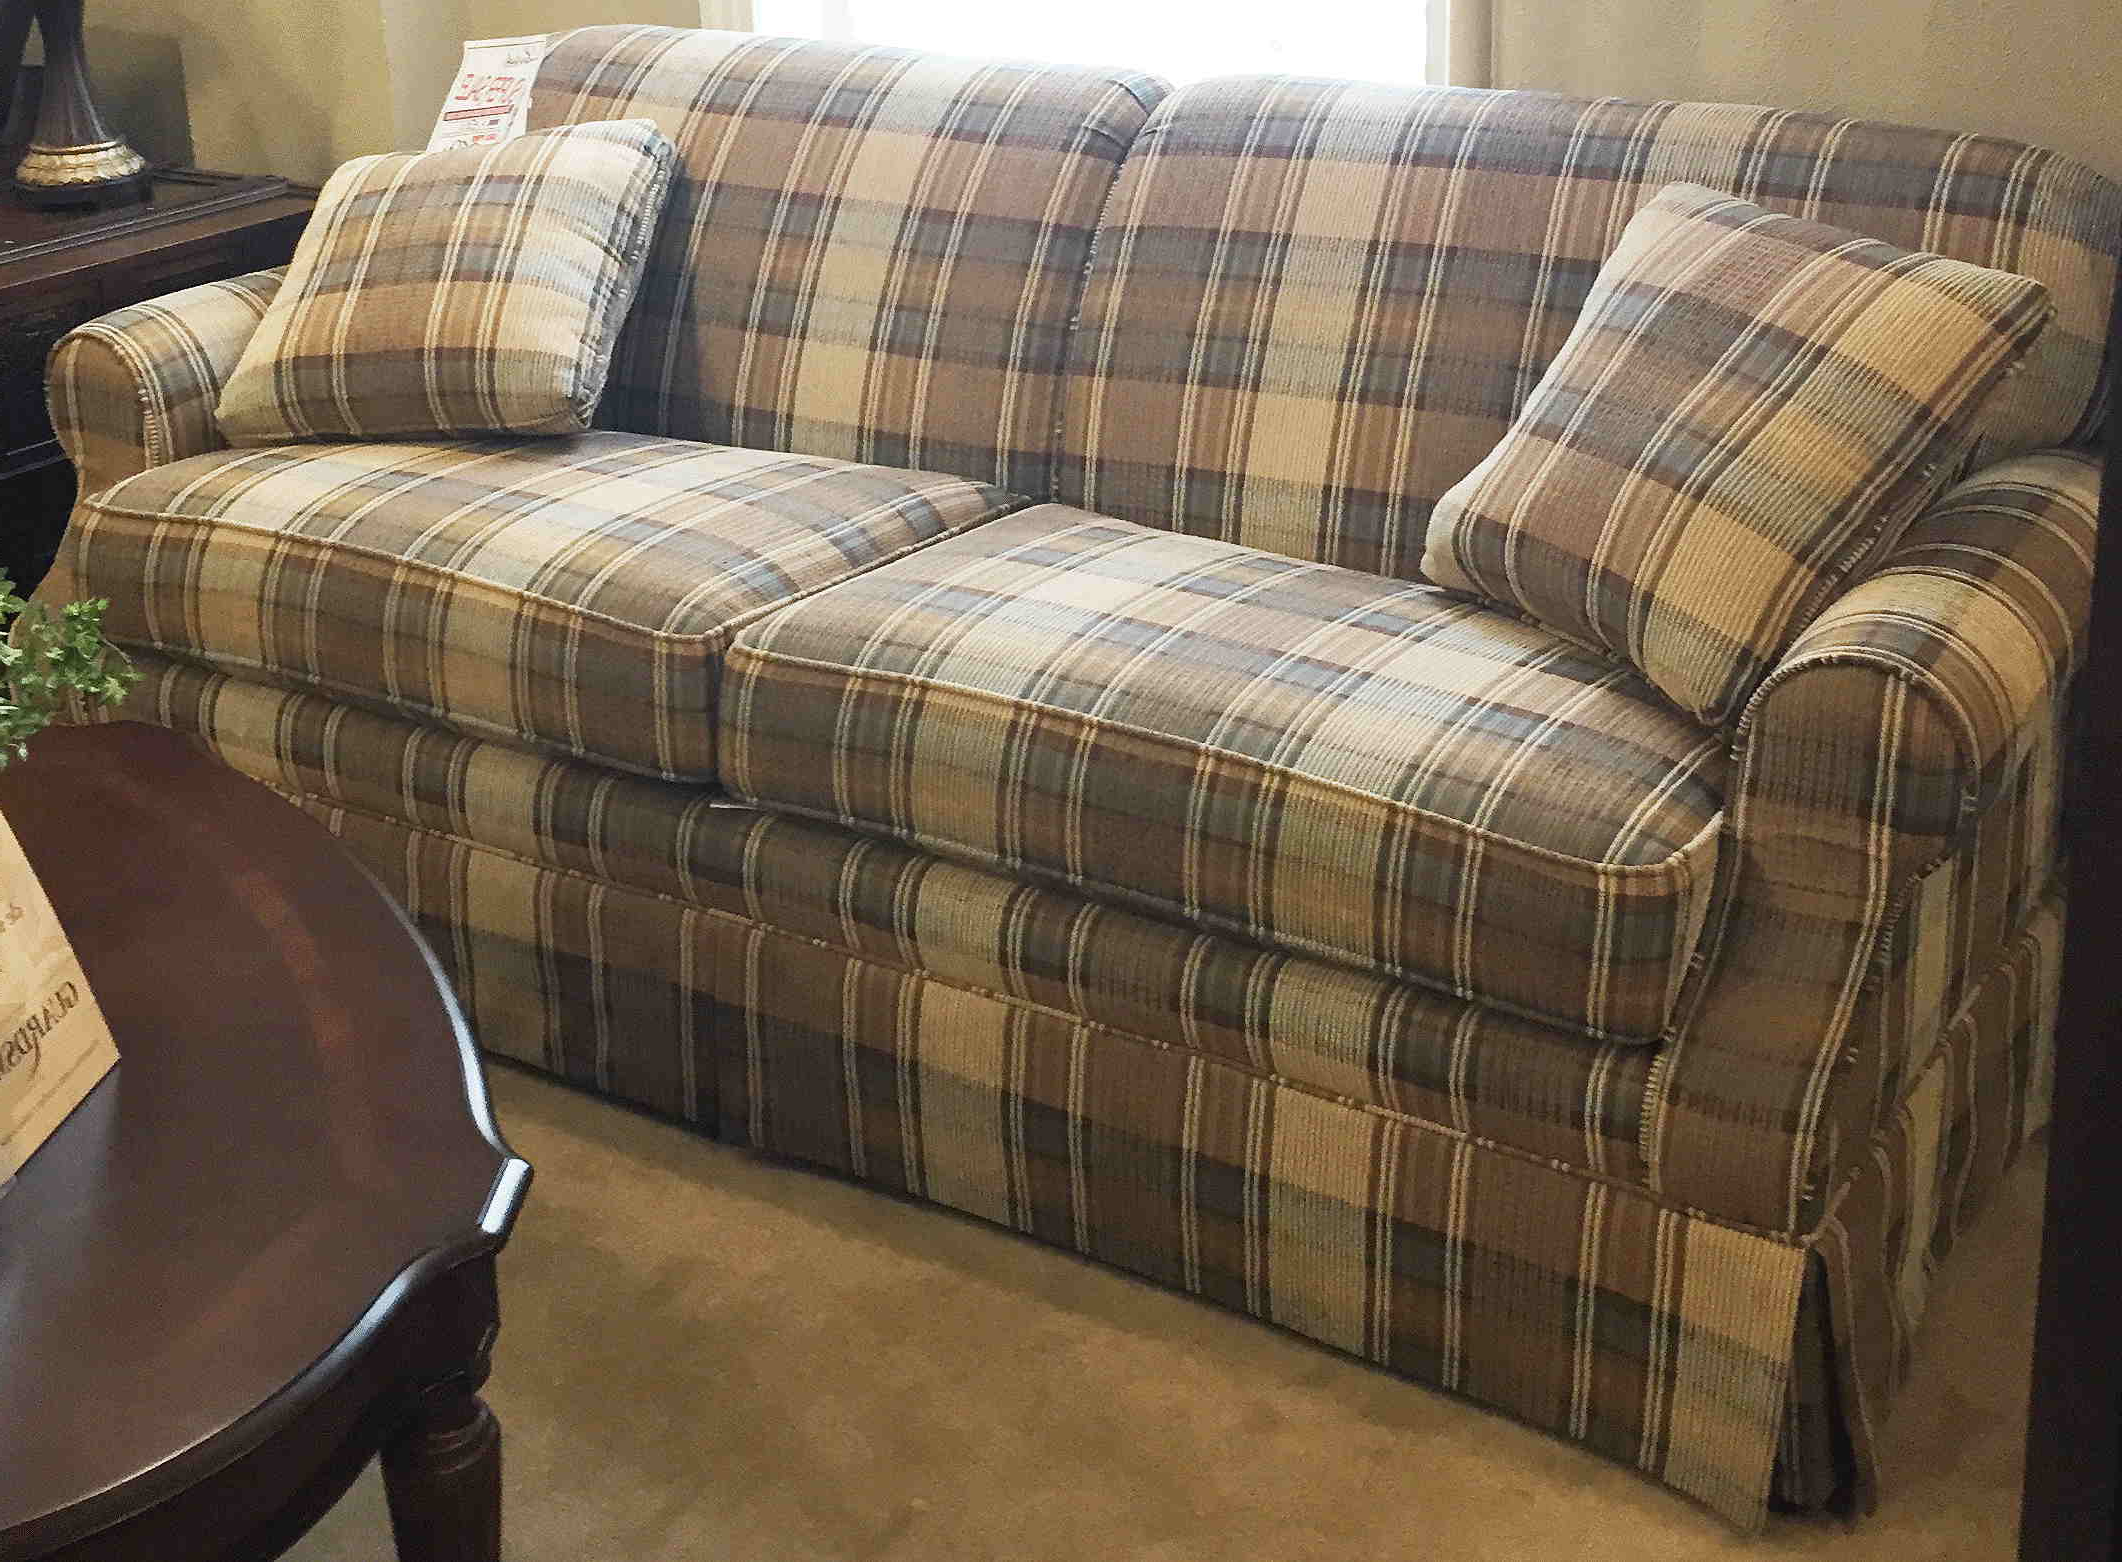 Plaid sofa Zara Home E9dx Zara Home sofas Qpw Decoration